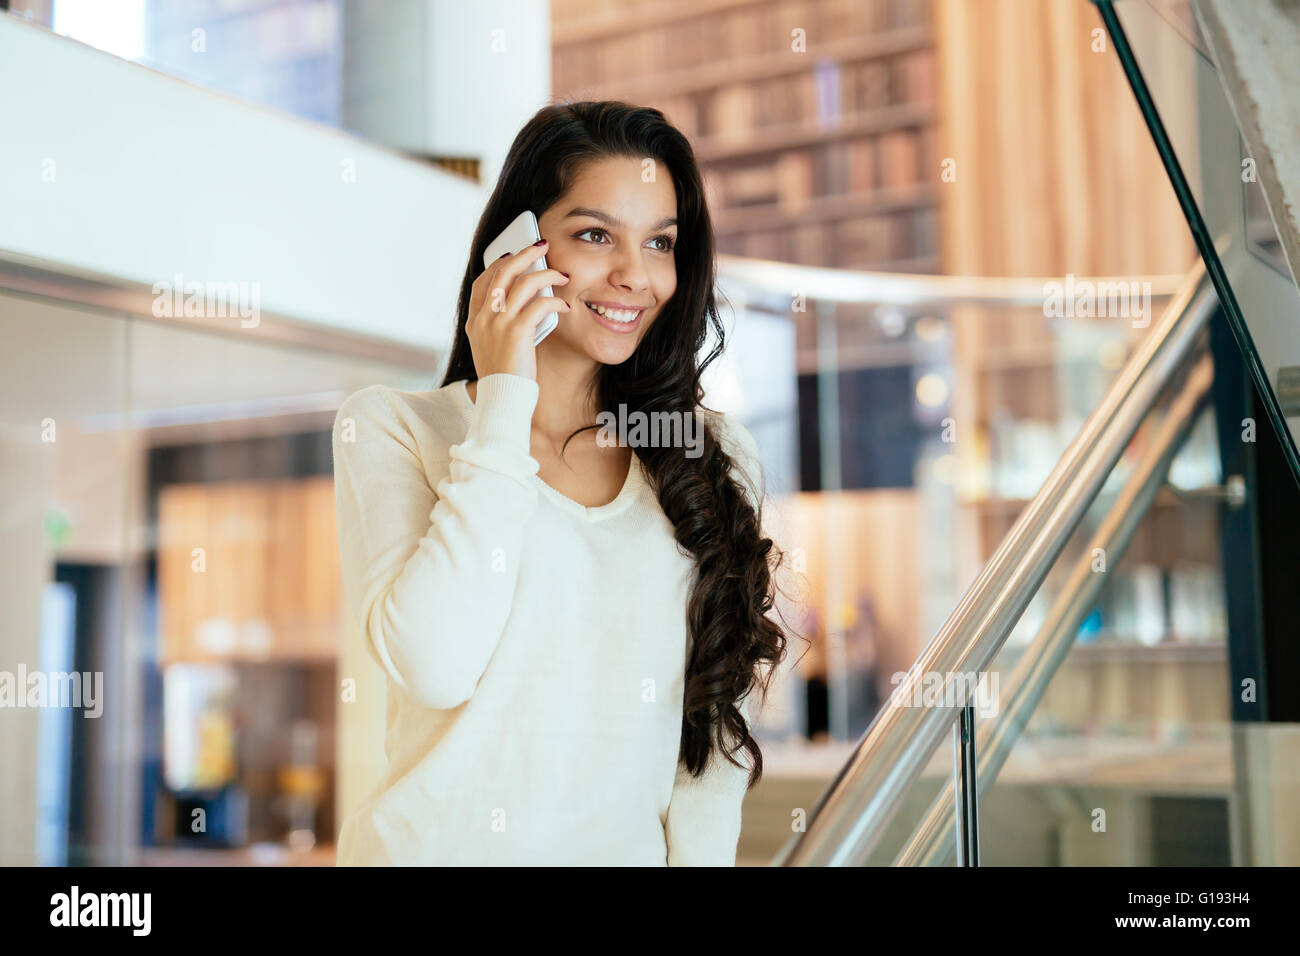 Businesswoman using phone intérieur et smiling Banque D'Images